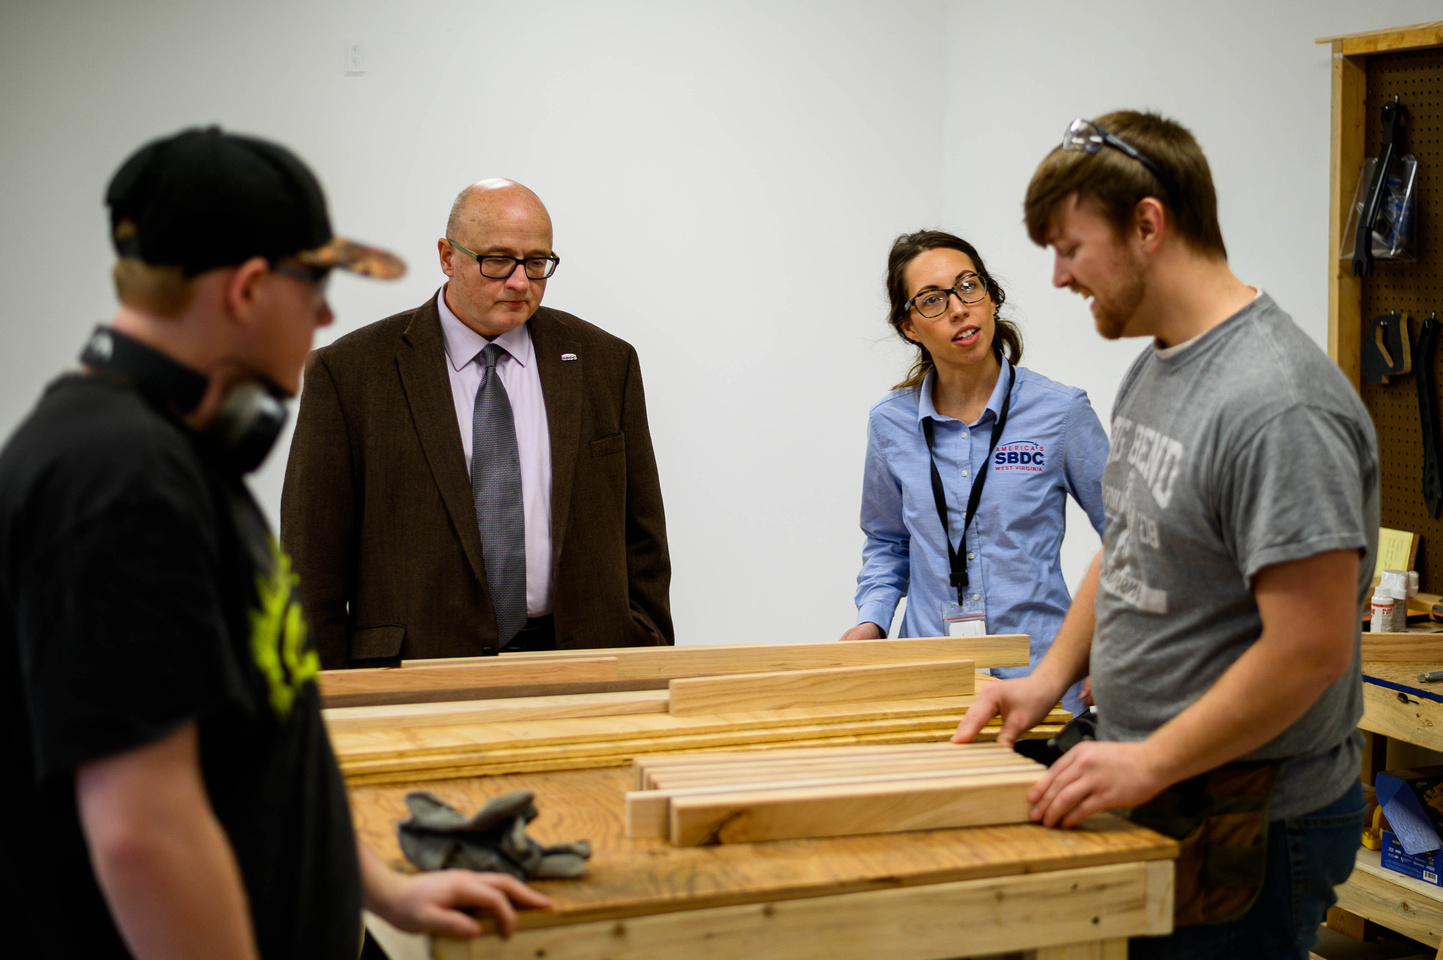 JCDC Woodworks: A passion for woodcraft creates jobs for disabled persons